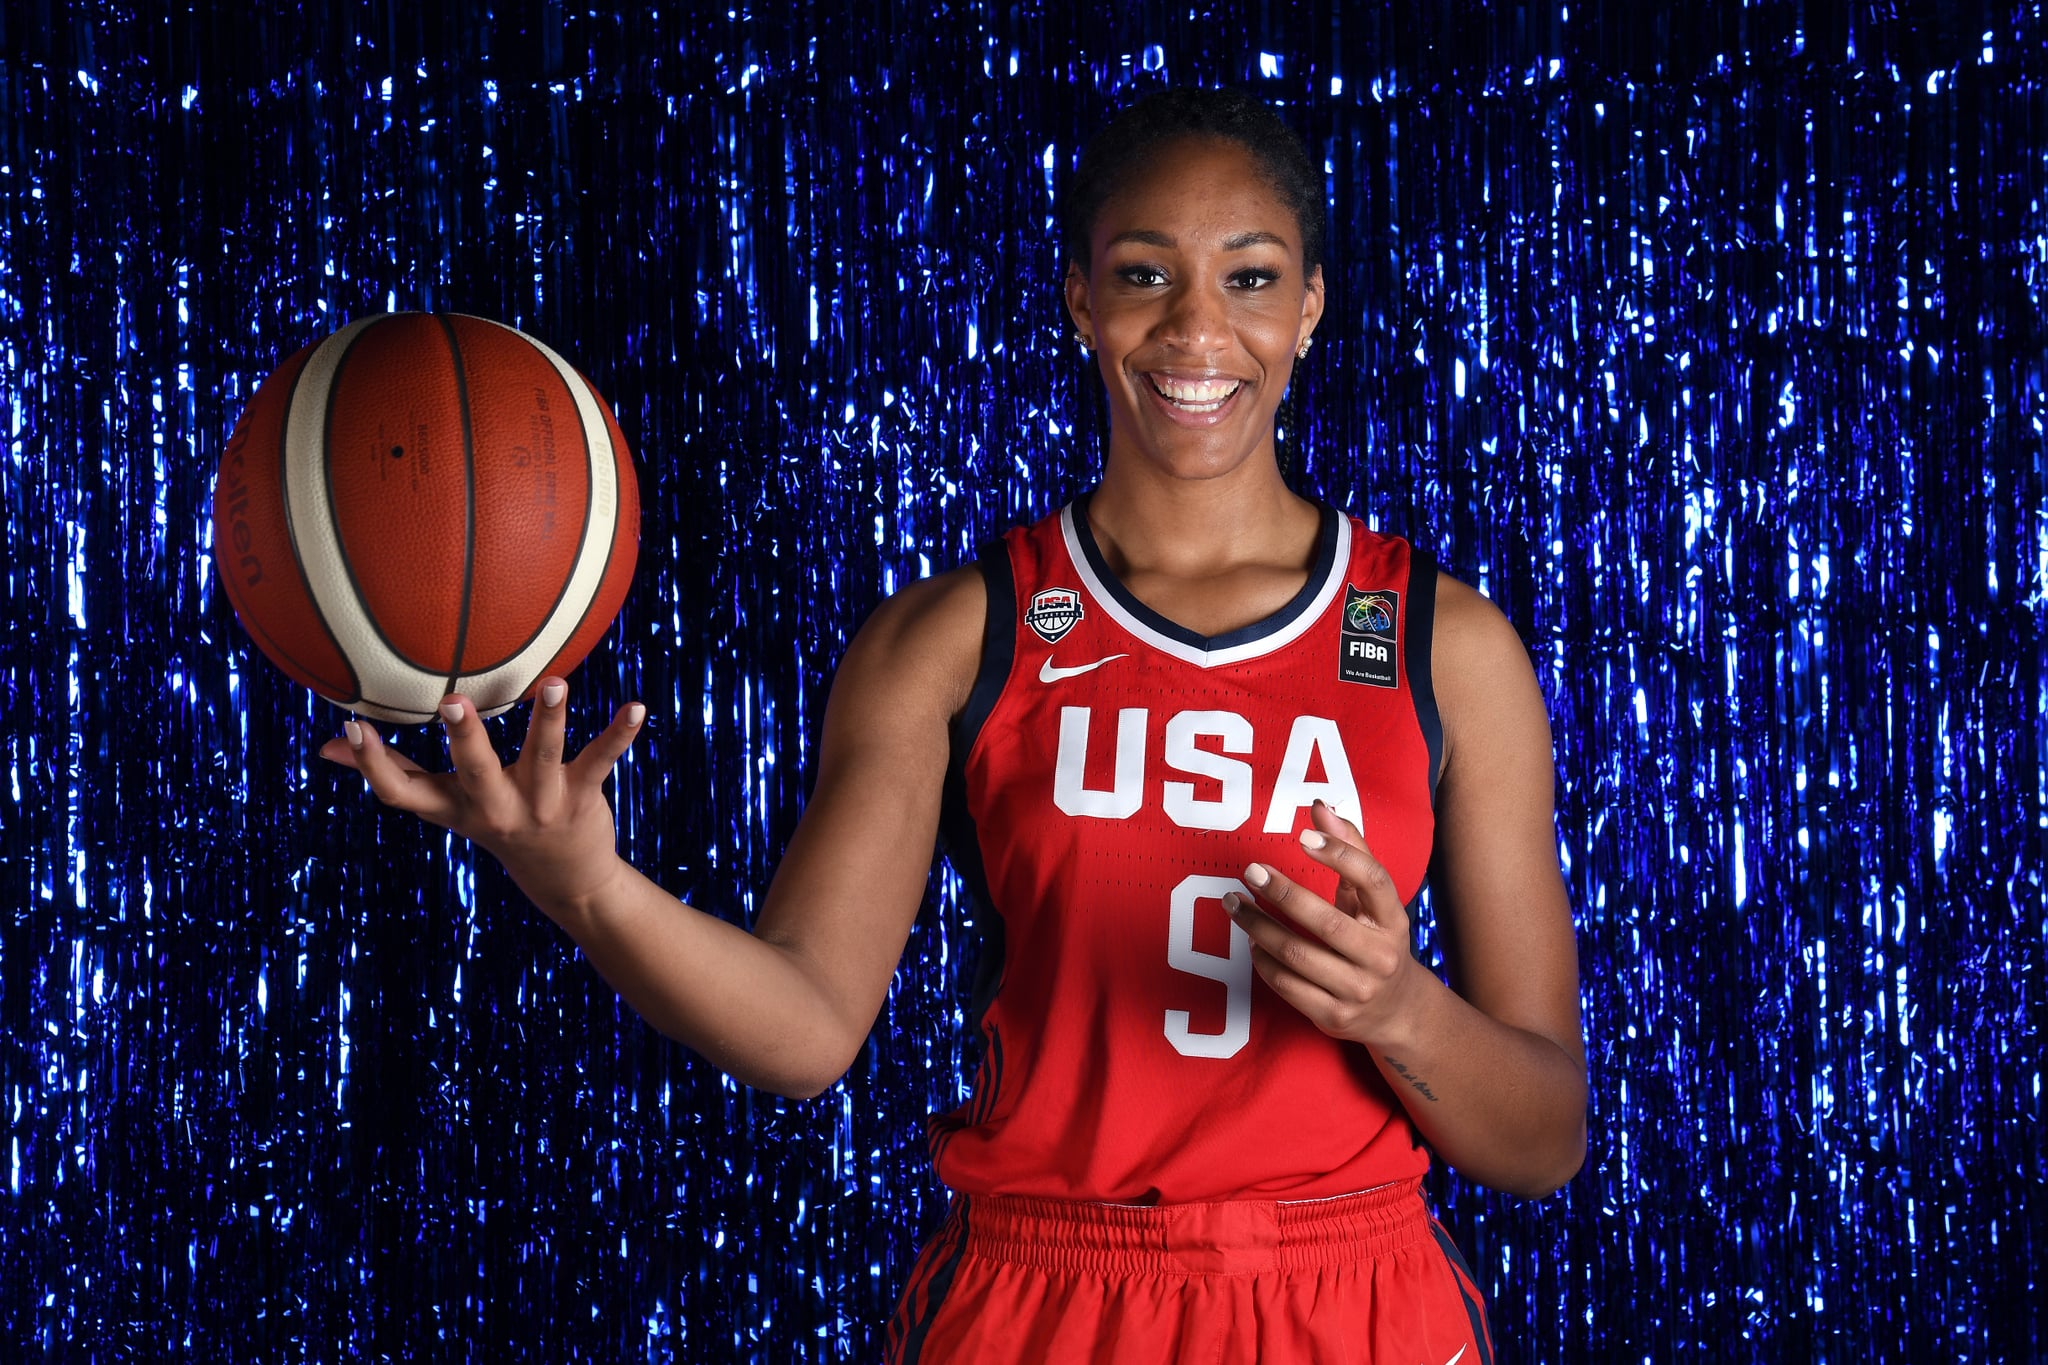 WEST HOLLYWOOD, CALIFORNIA - NOVEMBER 20: Basketball player A'Ja Wilson poses for a portrait during the Team USA Tokyo 2020 Olympics shoot on November 20, 2019 in West Hollywood, California. (Photo by Harry How/Getty Images)